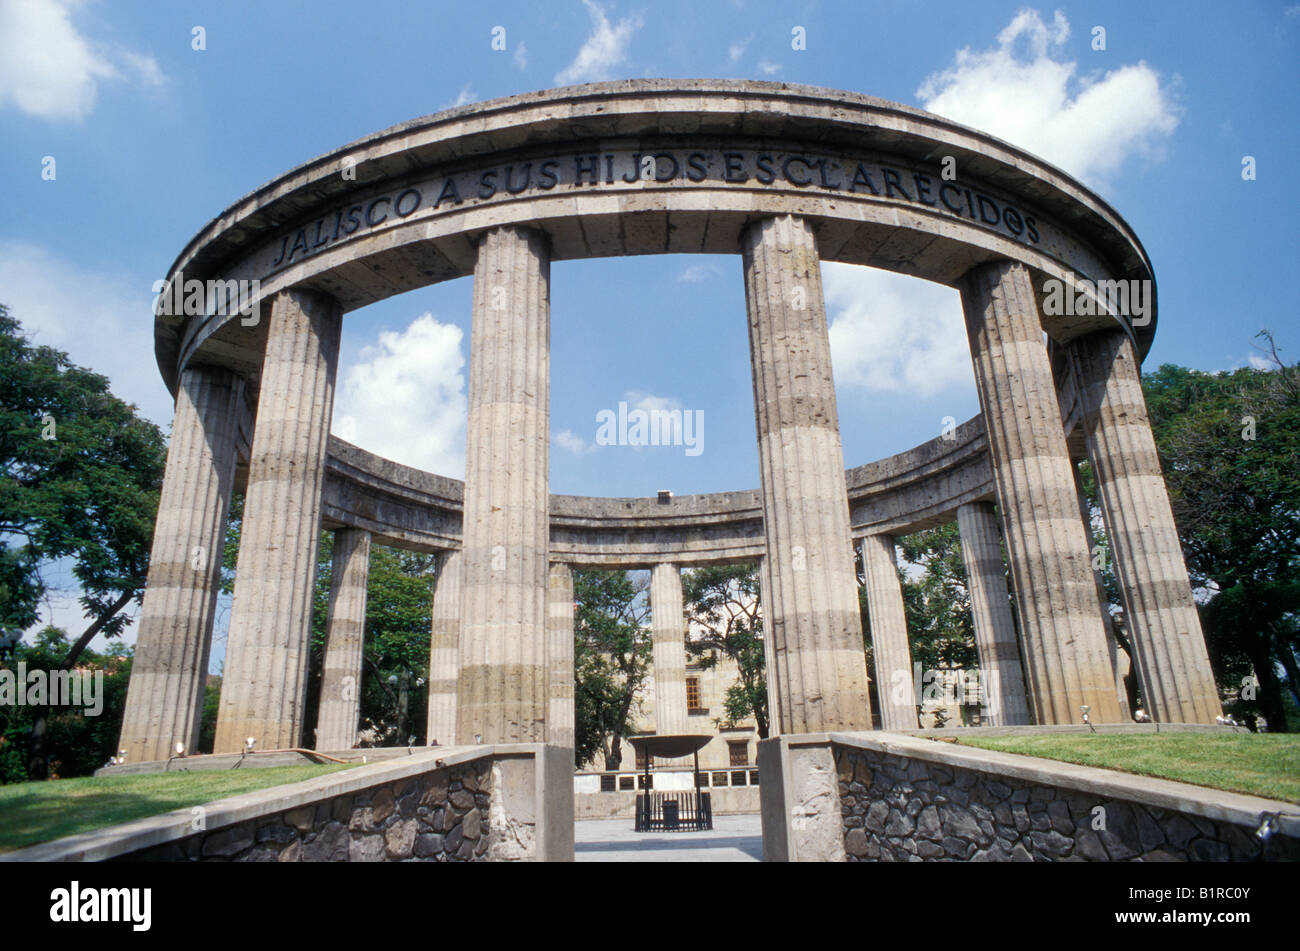 The Rotonda de los Hombres Jalicenses Ilustres or Rotunda of Illustrious Jaliscans monument, Guadalajara, Mexico - Stock Image